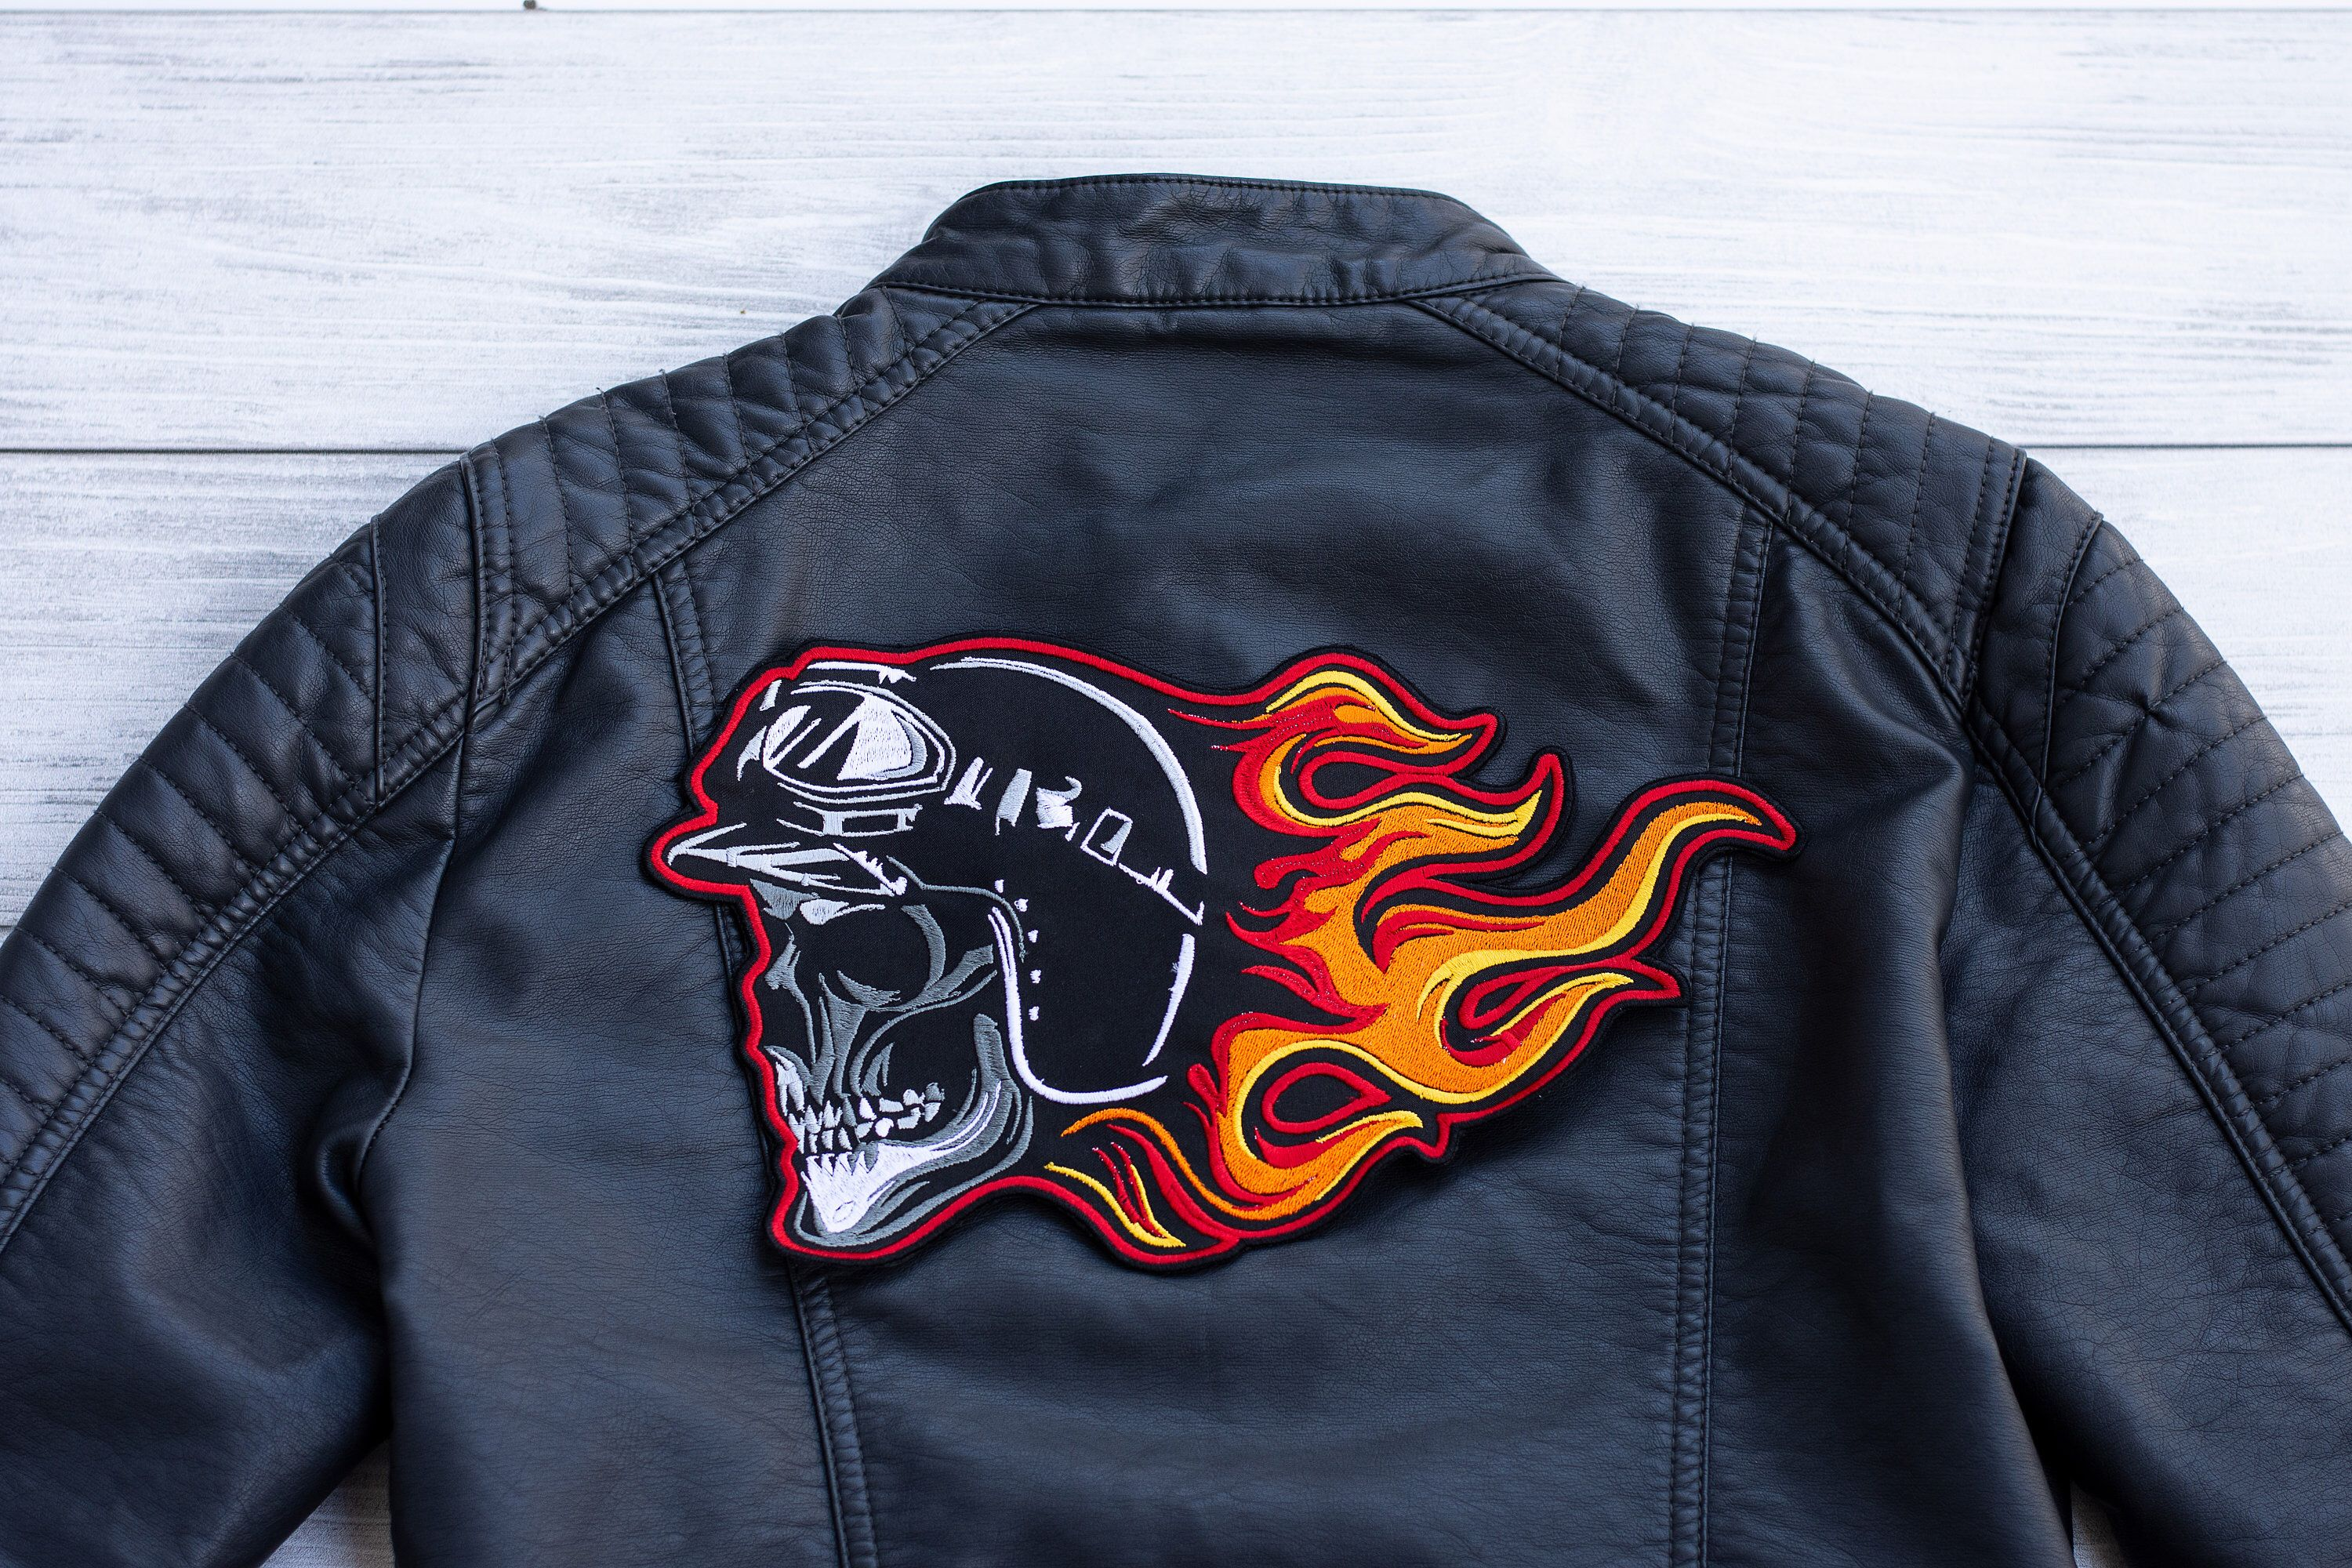 Patch for jackets 2 sizes, Clothing patches, Biker Skull